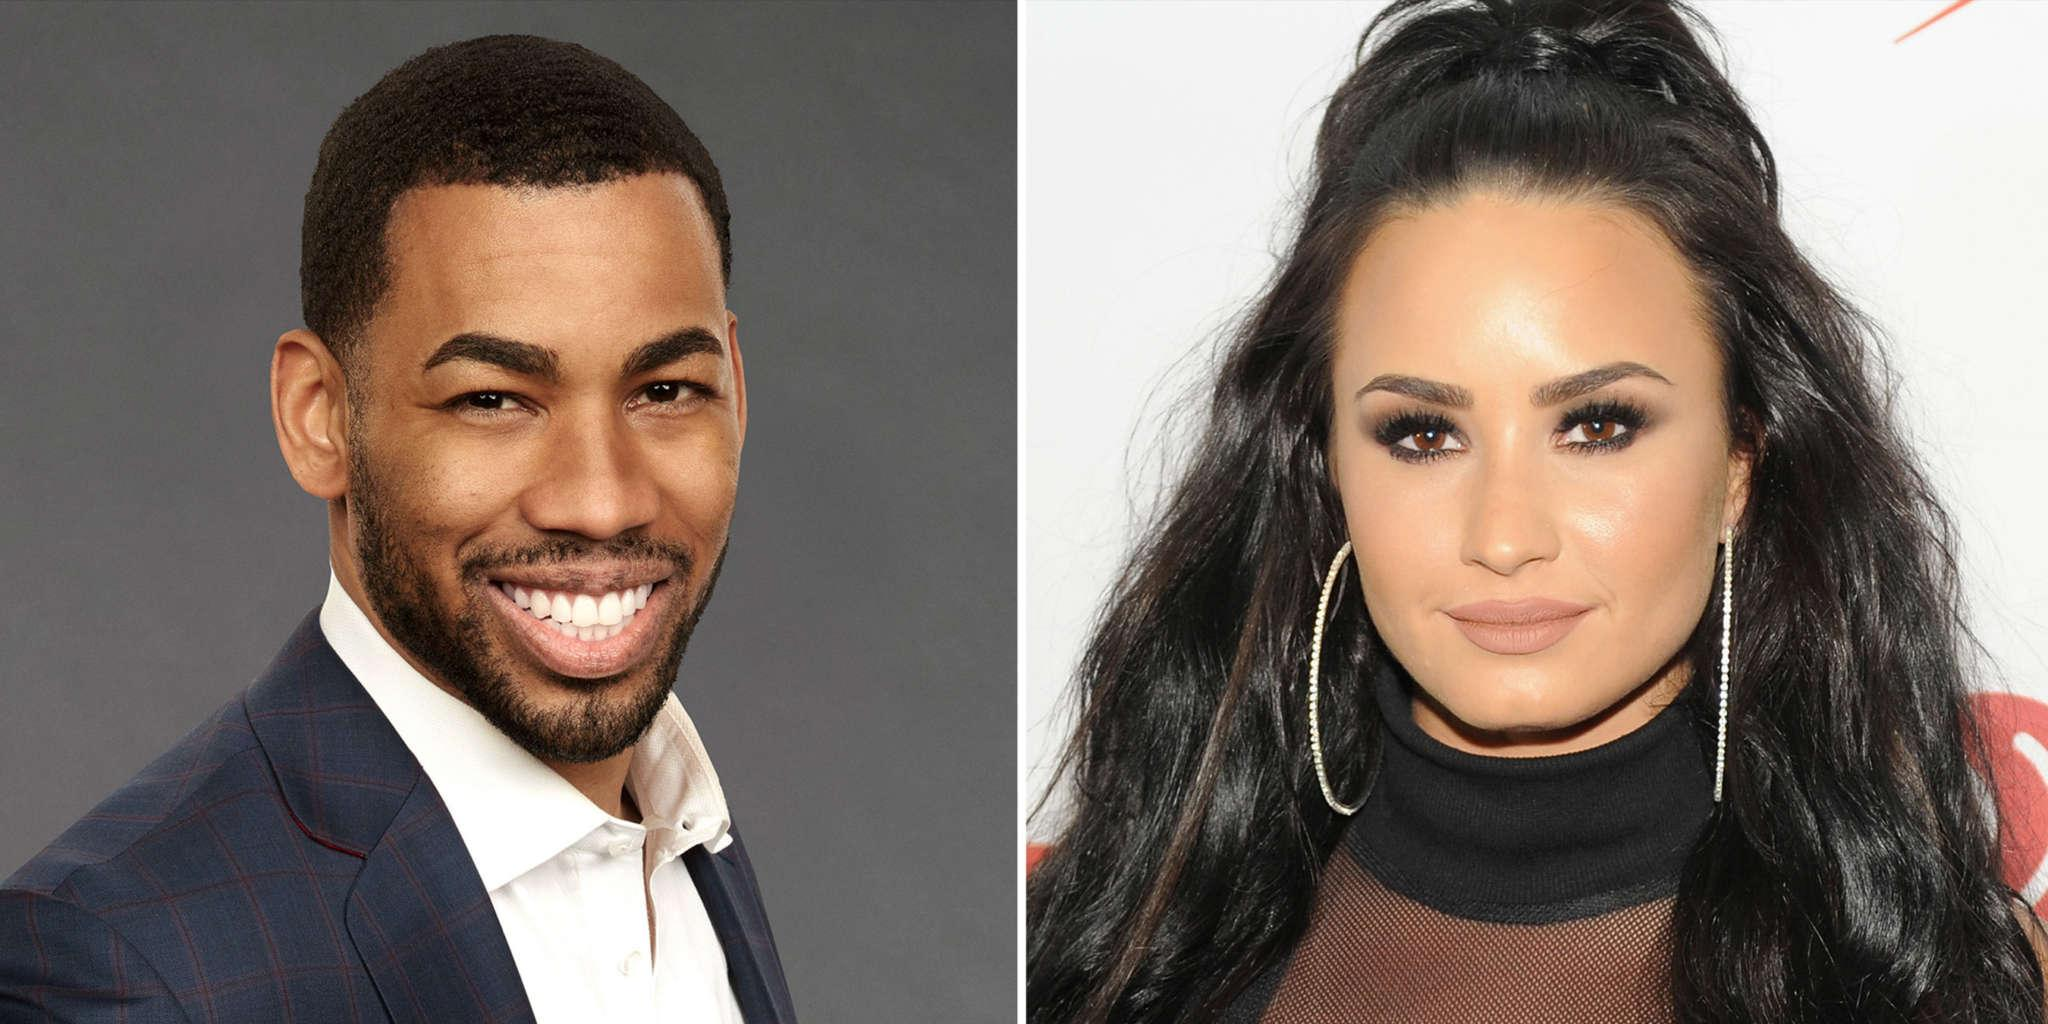 Demi Lovato Fans Pleading With Bachelorette Star Mike Johnson To Wife Her After She Expressed Interest In Him!